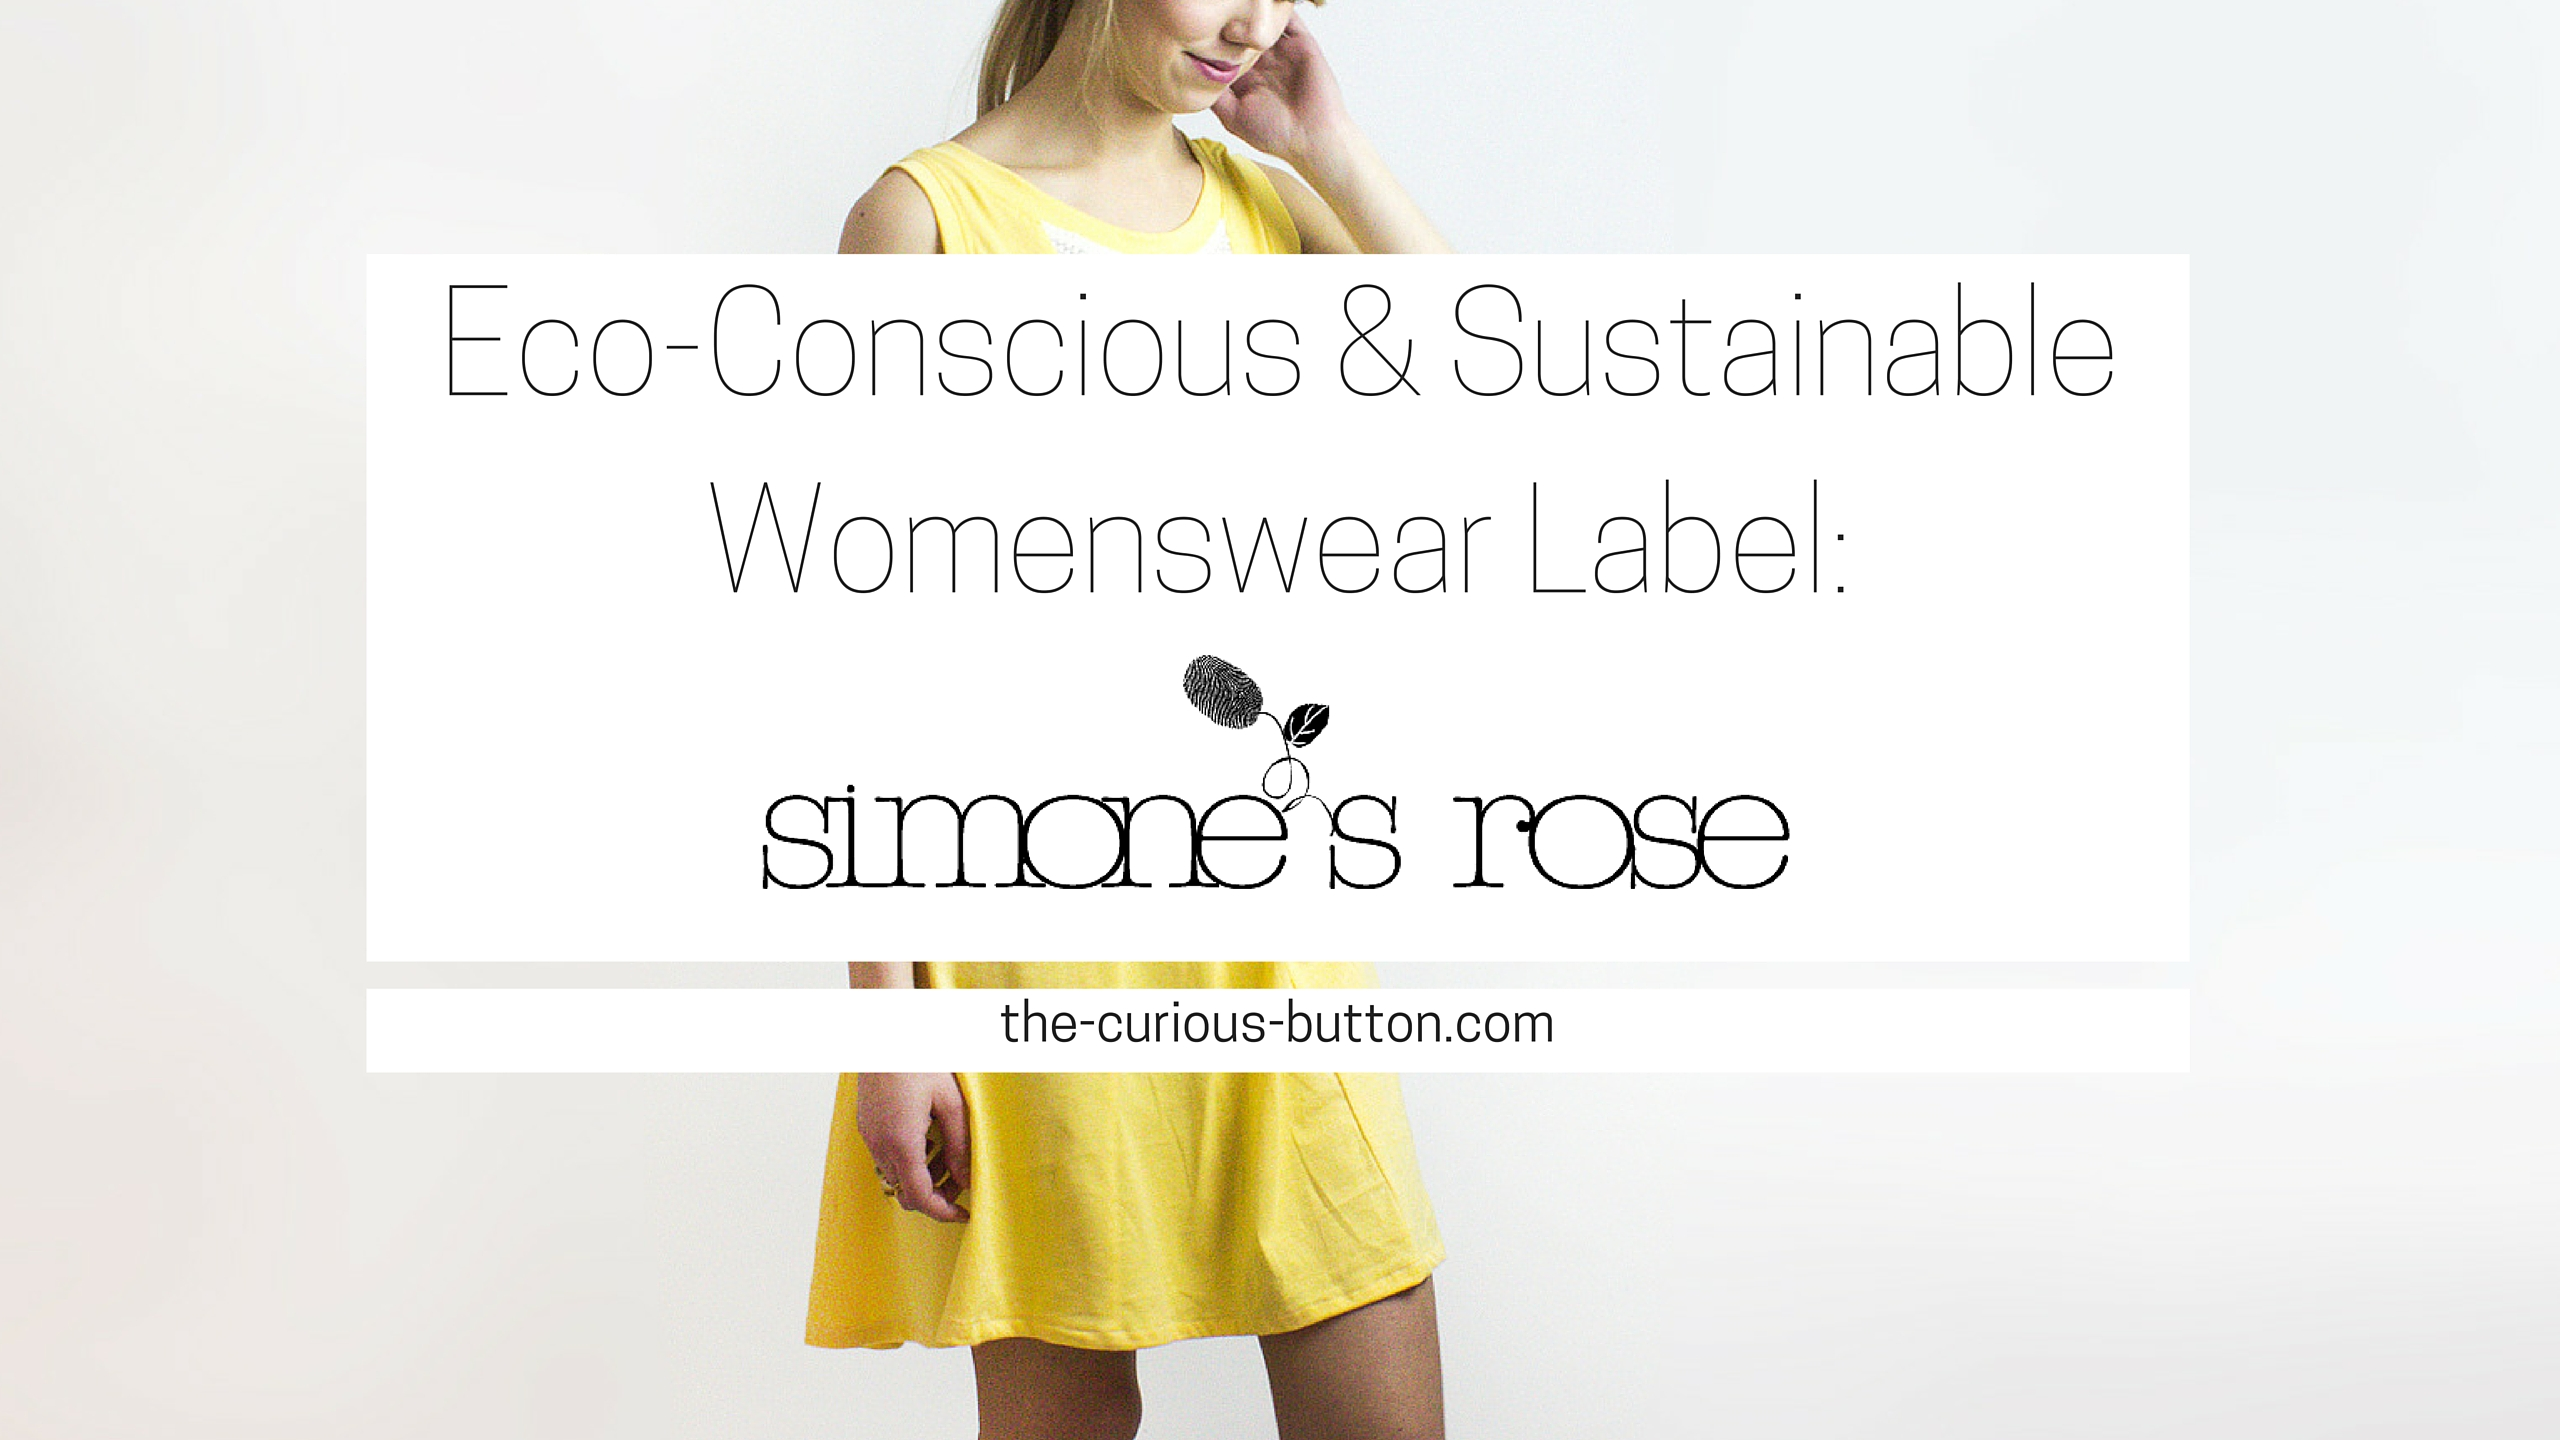 Eco-Conscious & Sustainable Womenswear Label - Simone's Rose | The Curious Button, an ethically conscious lifestyle blog.